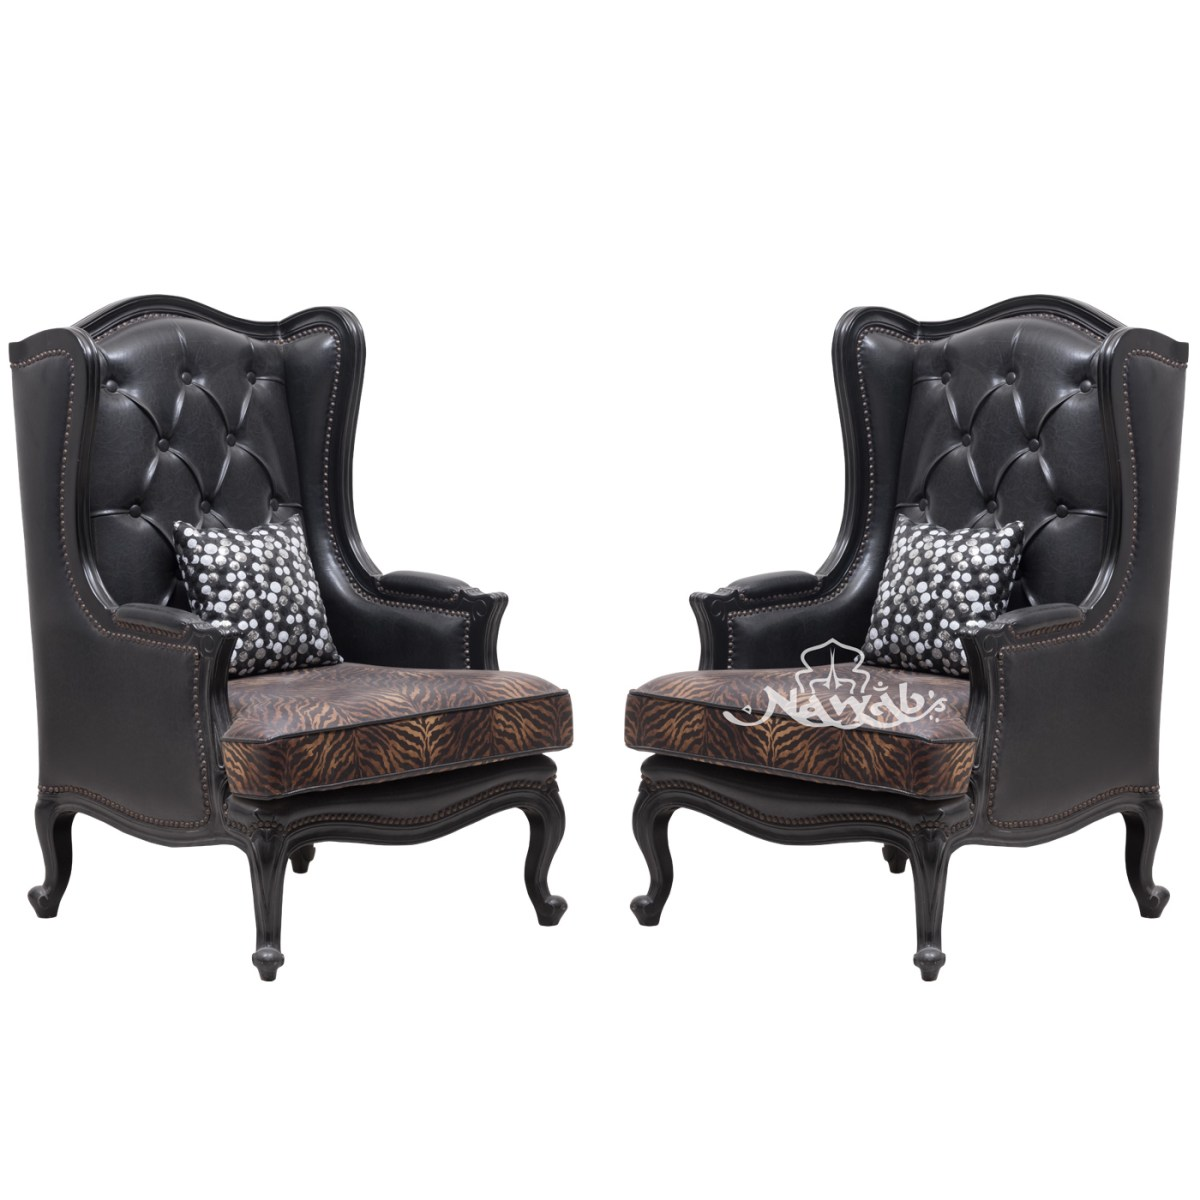 wing-chair-victorian-classical-chair-leatherite-combination-fabric-black-polish-customized-quilting